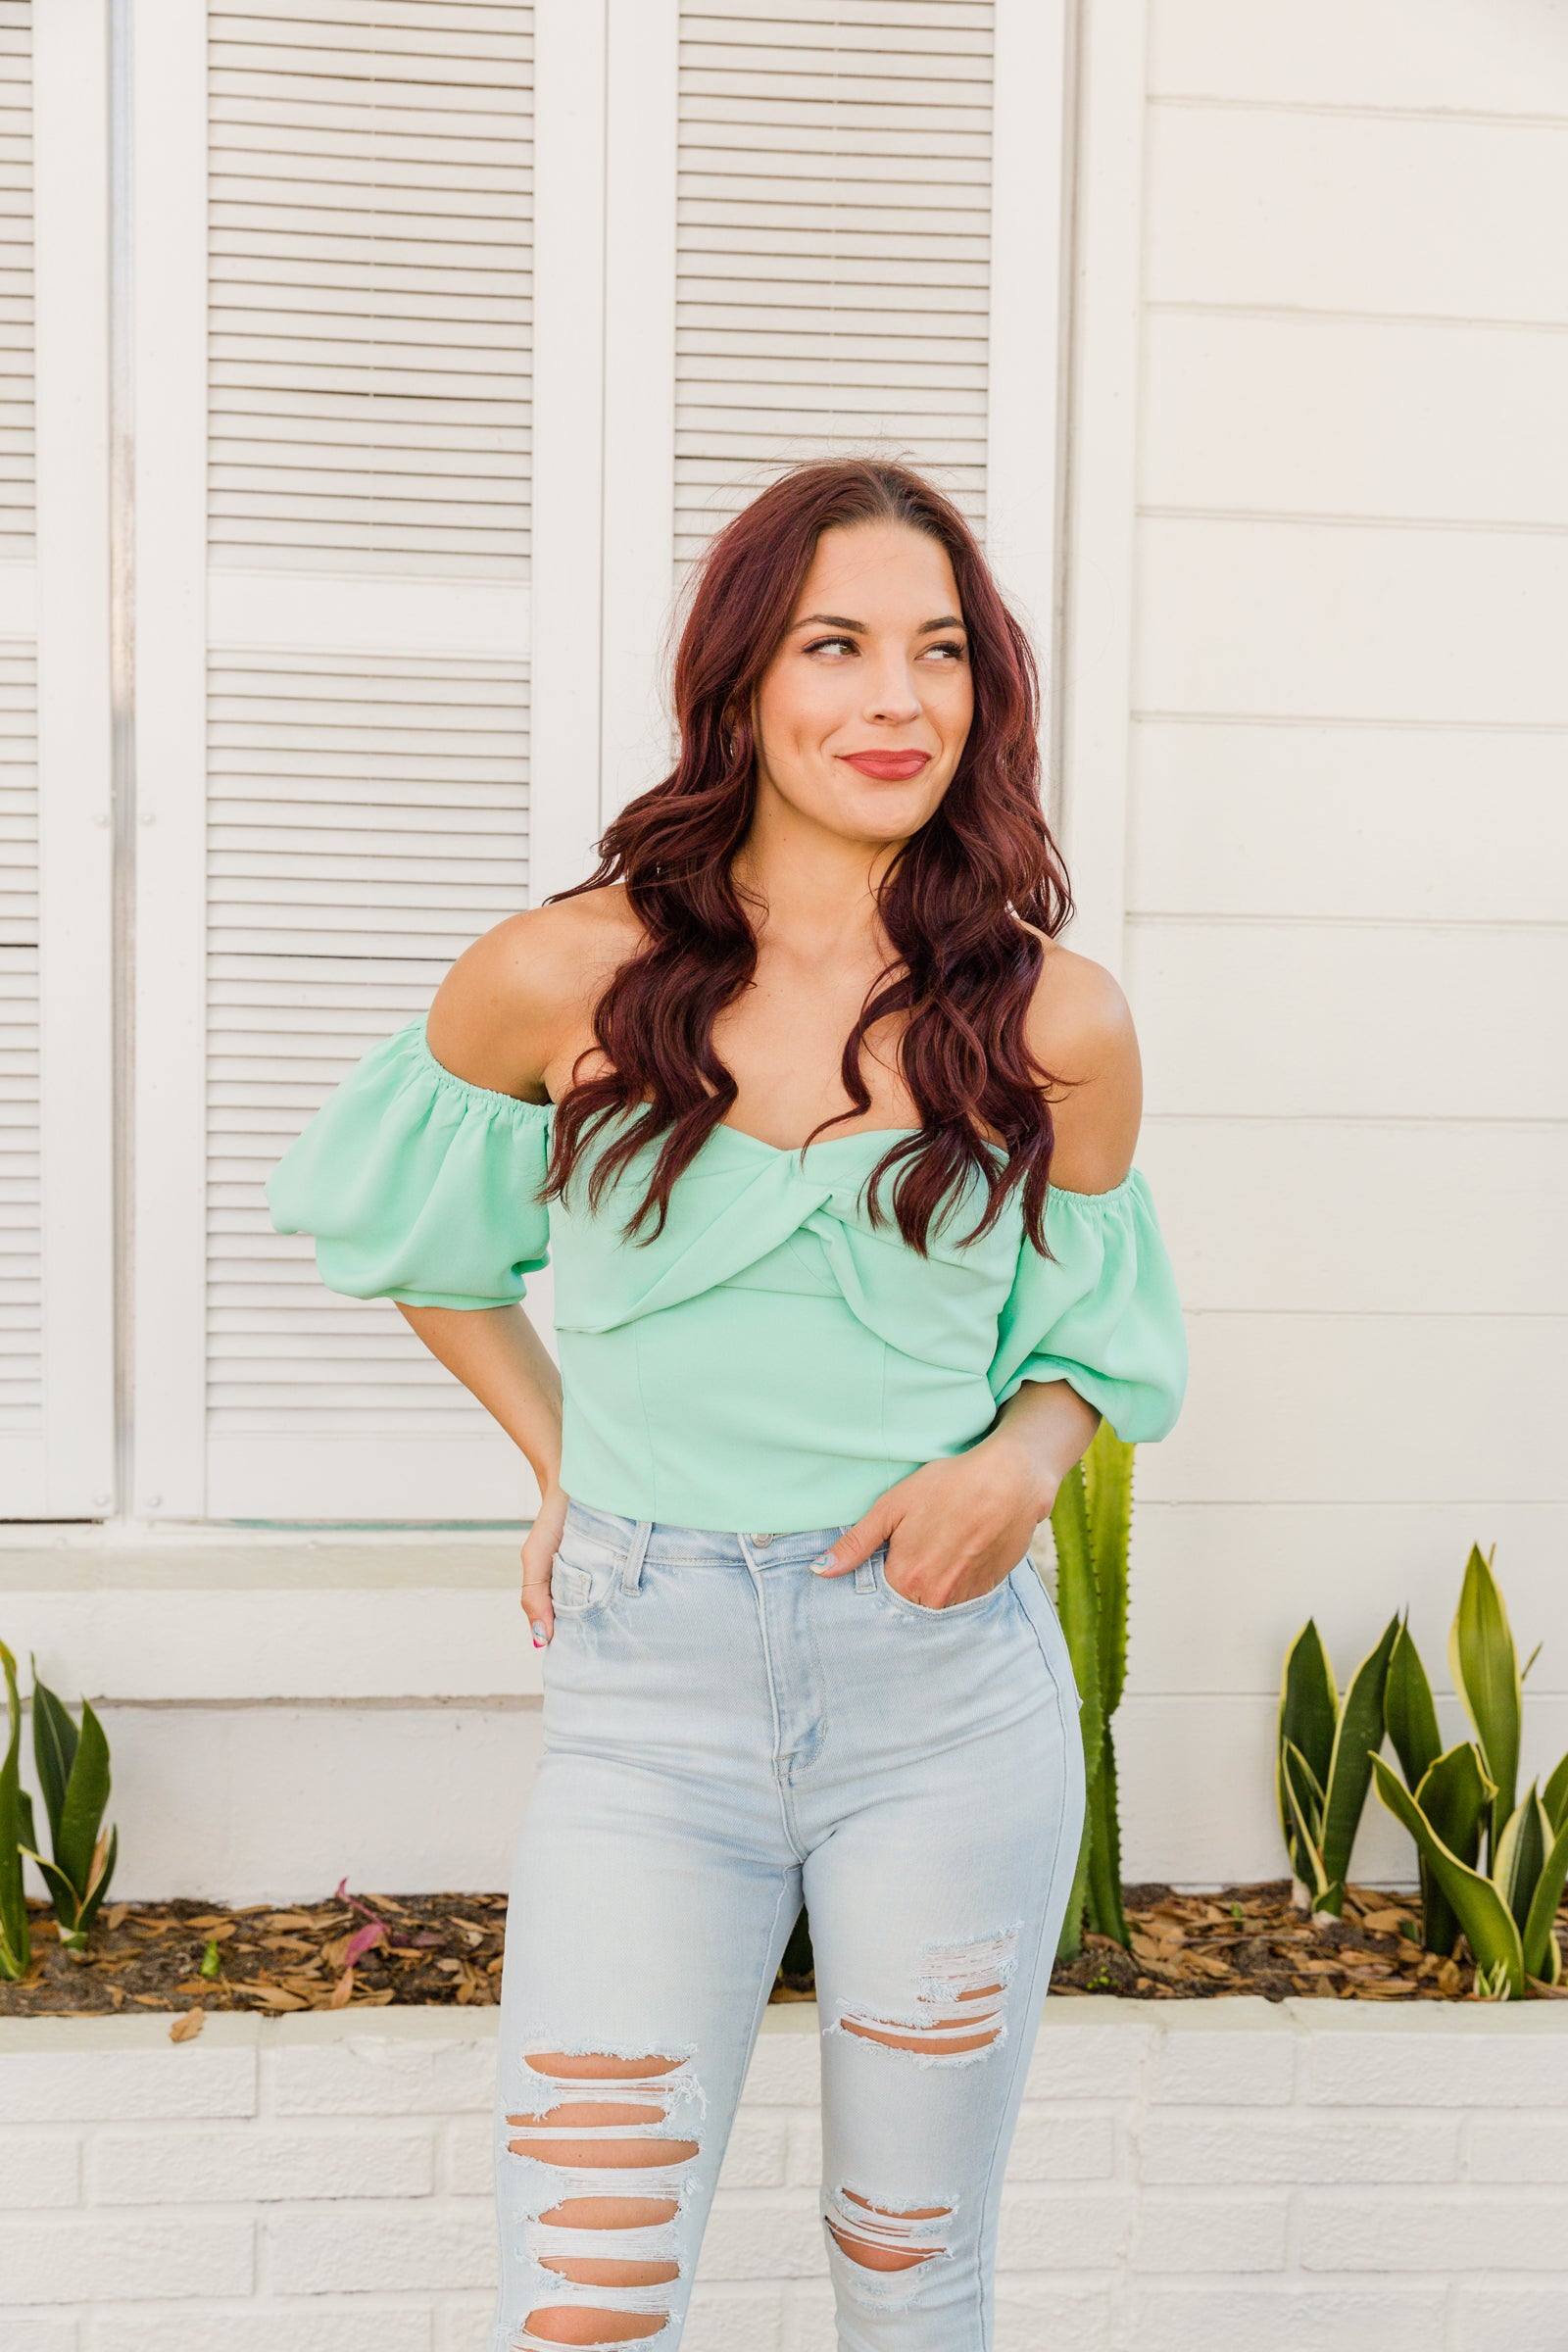 Short elastic cuffed bubble sleeves attach to an off-the-shoulder bodice with a sweetheart neckline, bust twists, and gathers before smoothing out into a cropped bodice silhouette with a smocked back.